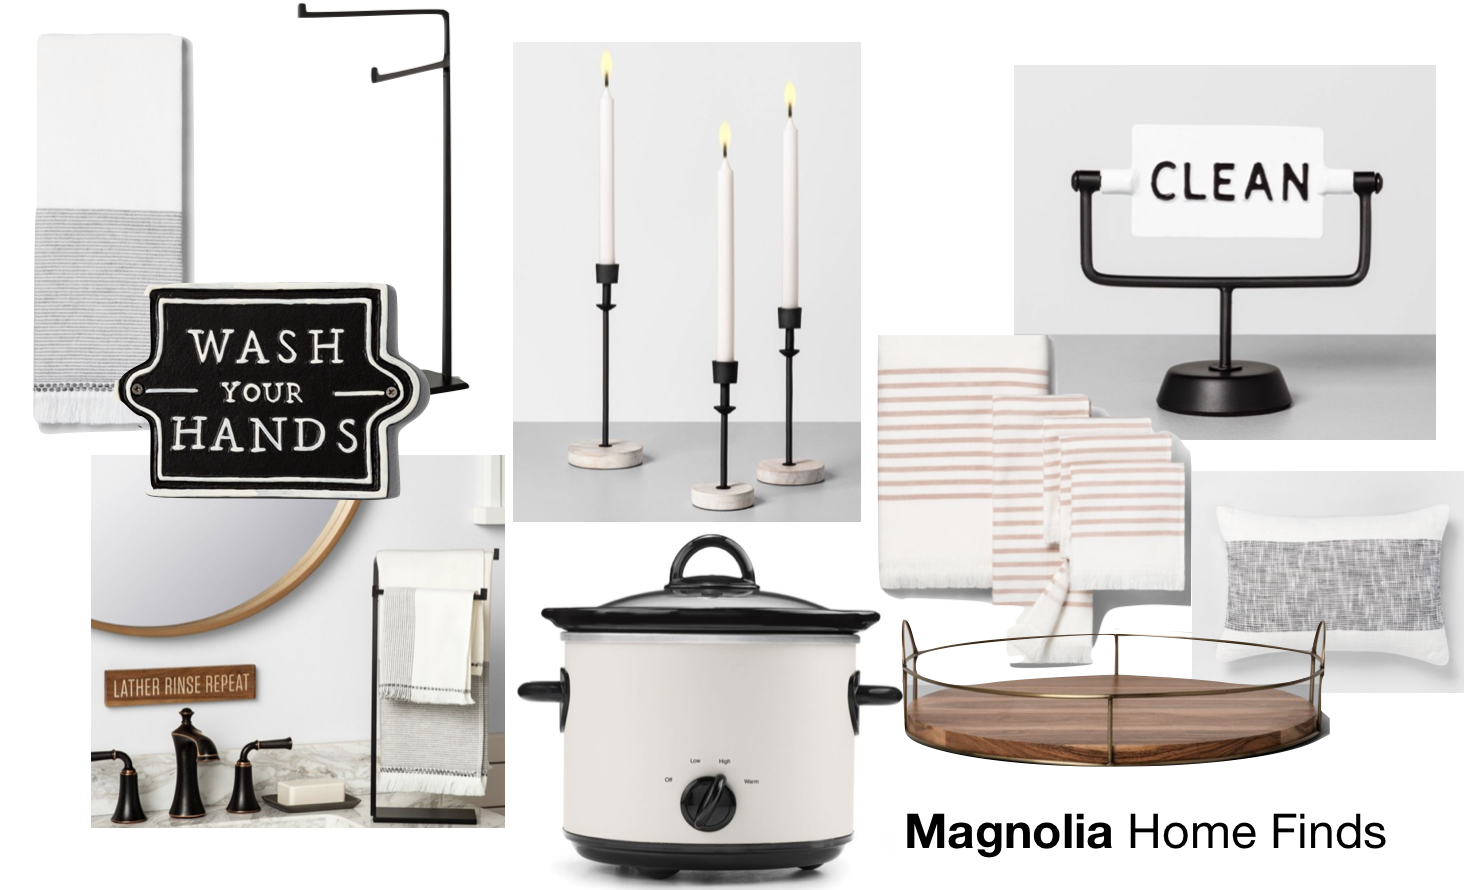 Magnolia Home Finds